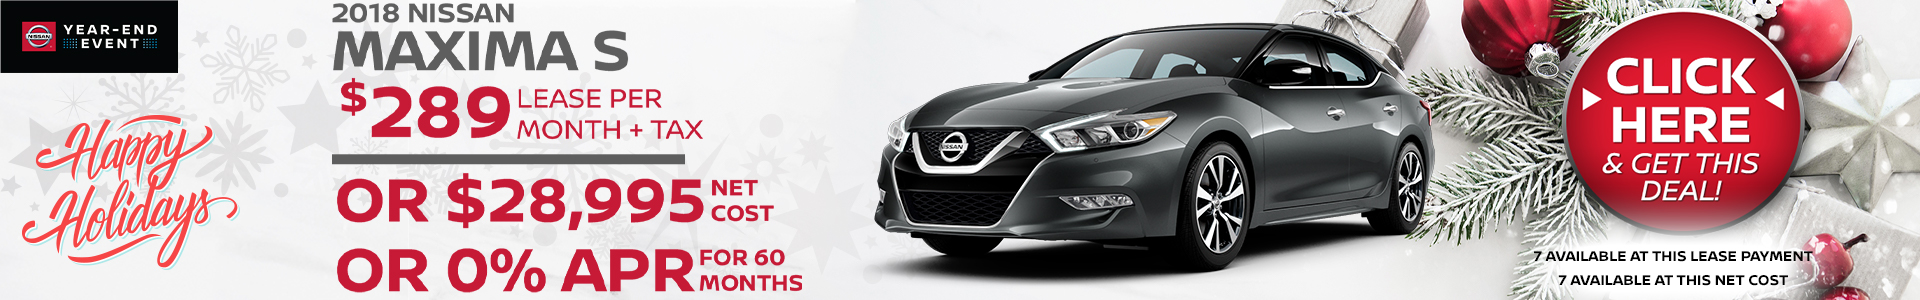 Mossy Nissan - Nissan Maxima $7,500 Off MSRP